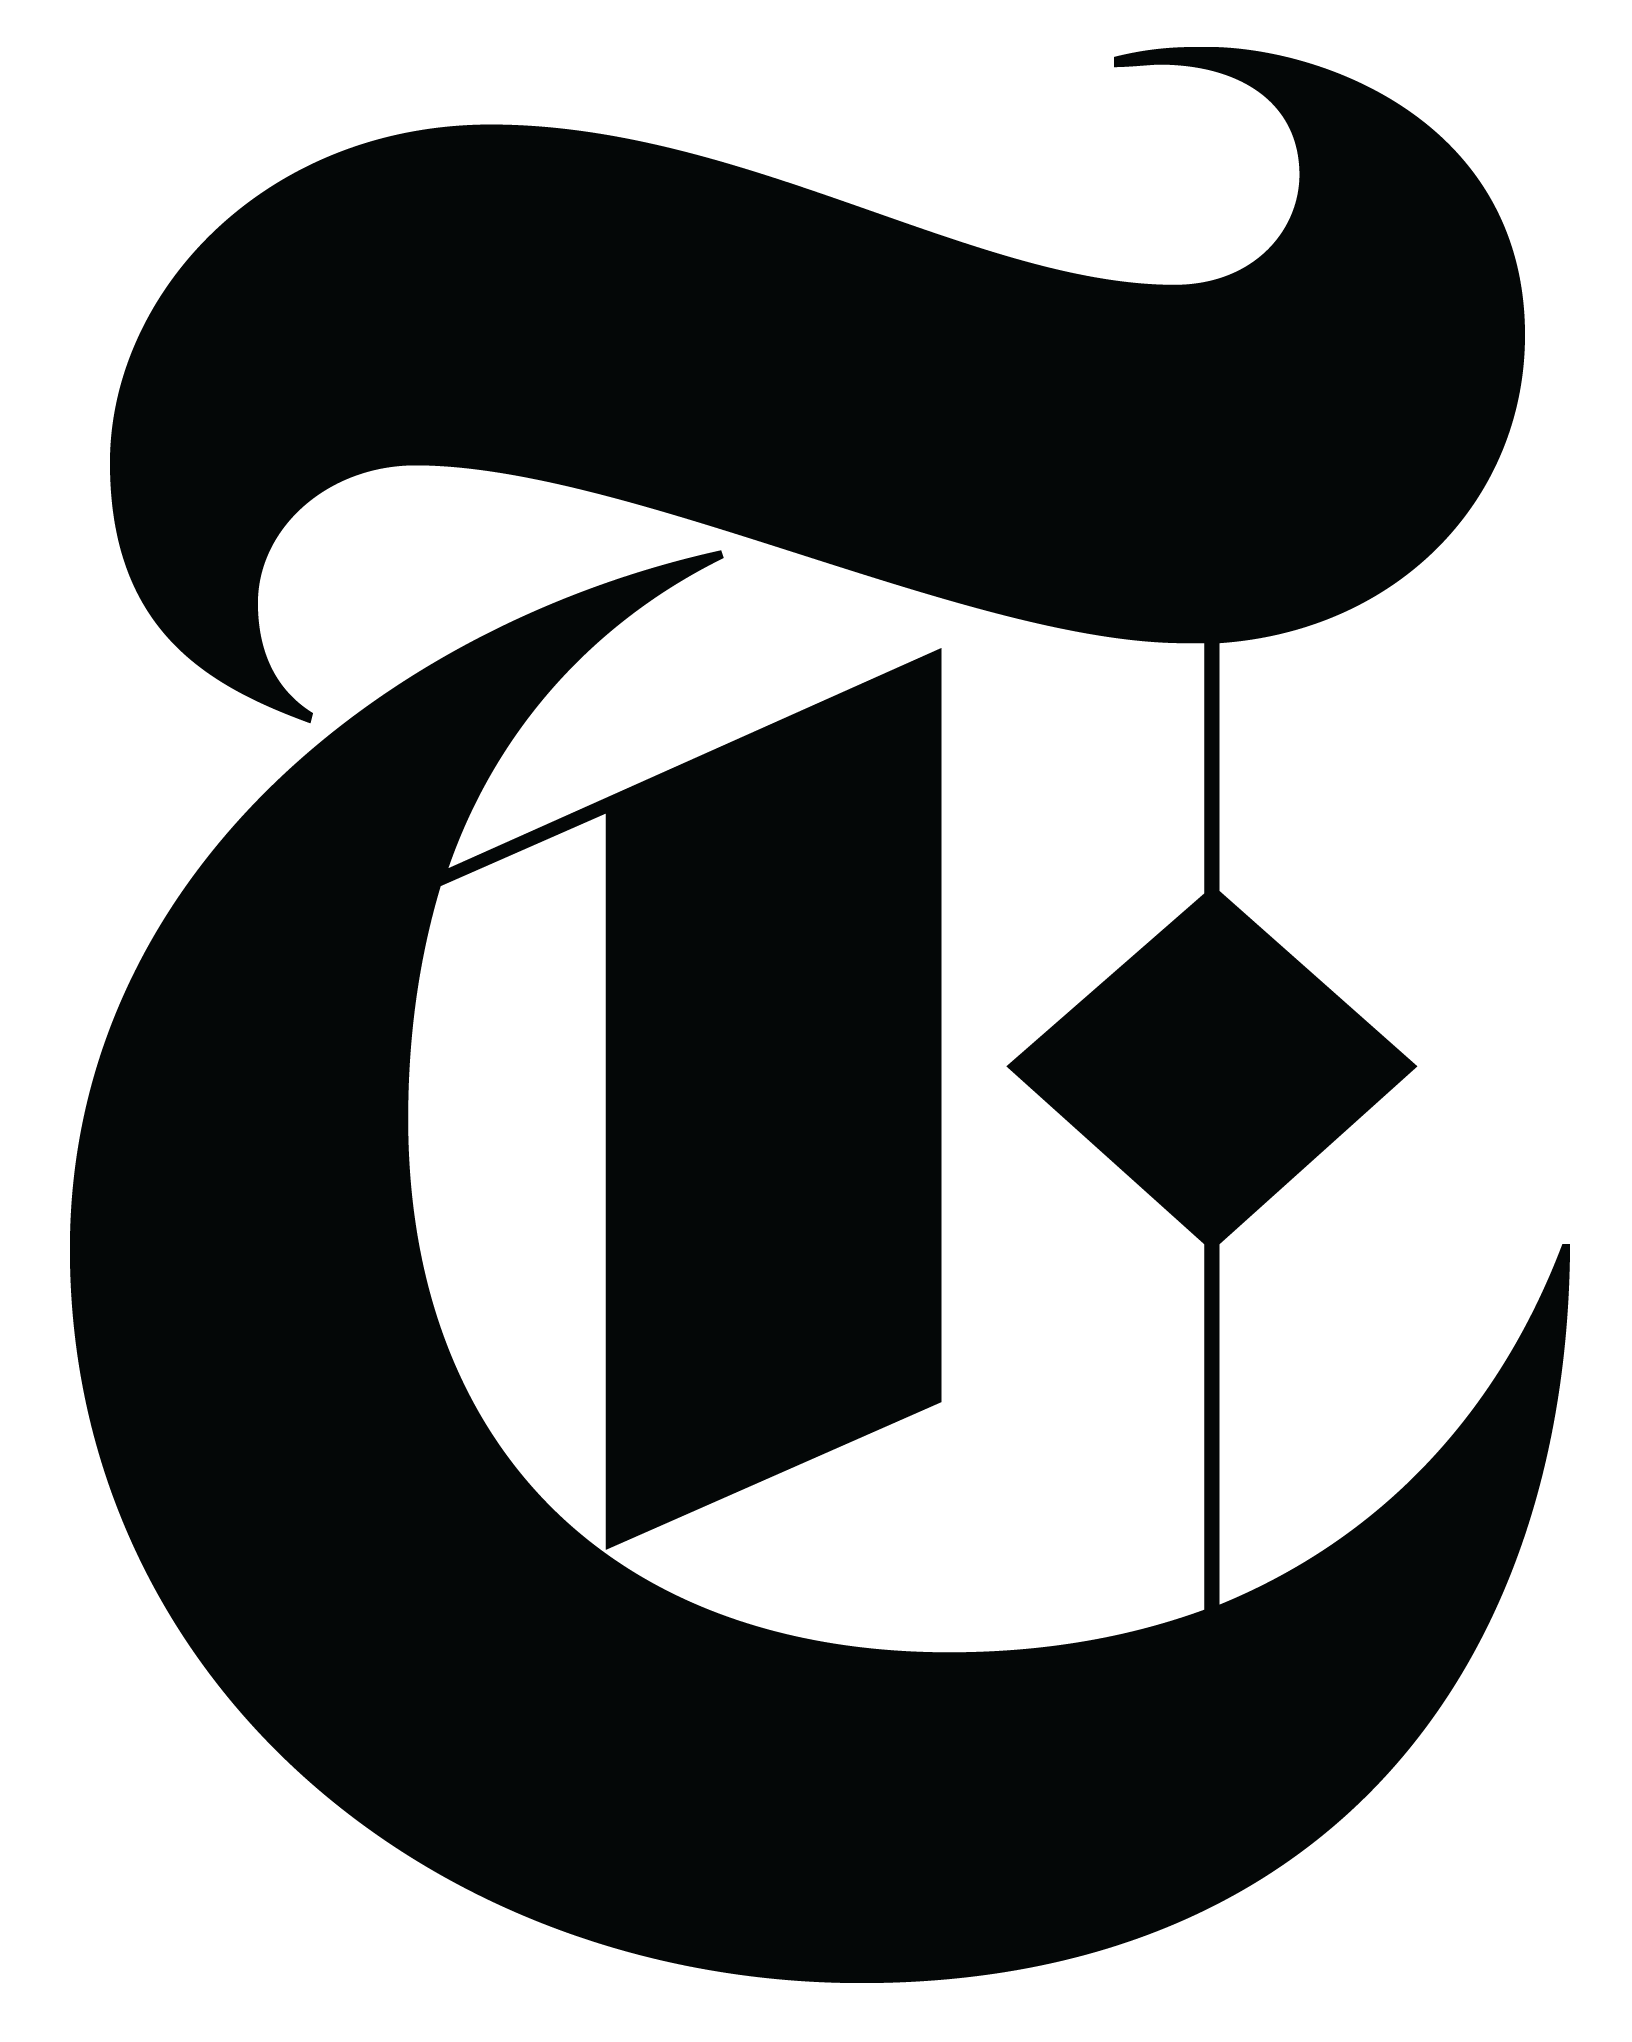 essay criticizes pieces the new york times is publishing